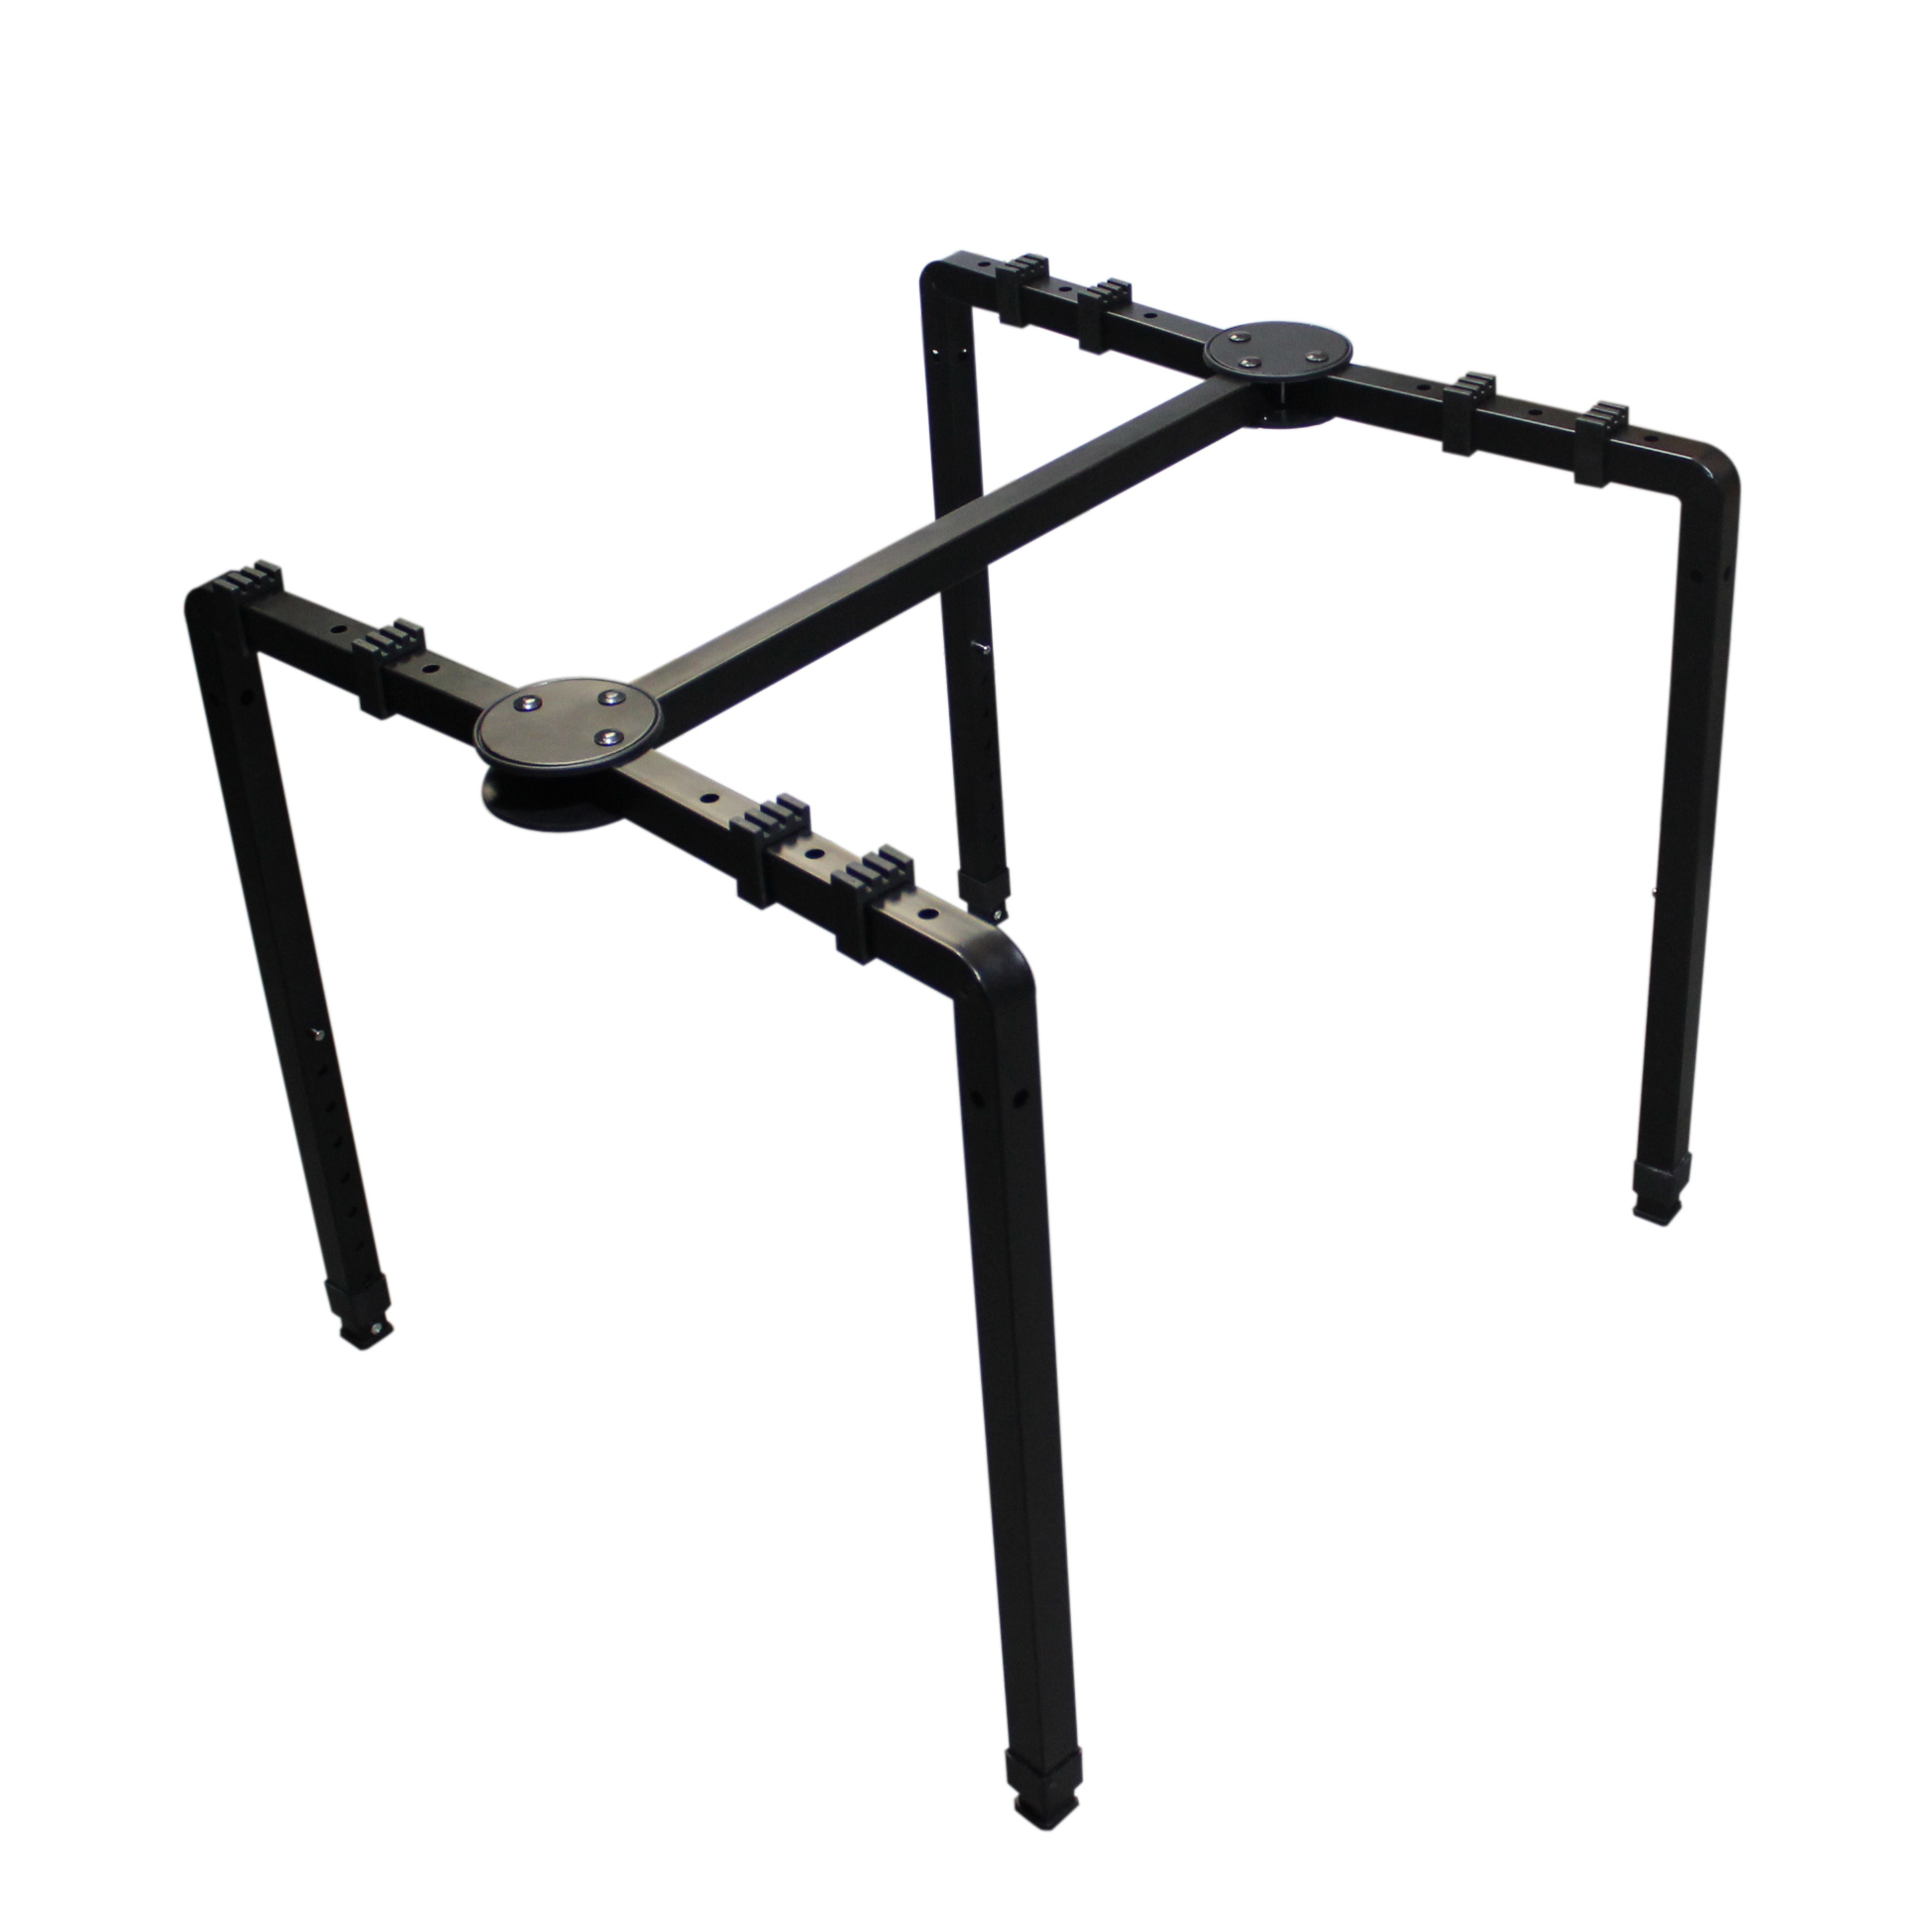 t stand portable multi function for mixing consoles or controller prox live performance gear. Black Bedroom Furniture Sets. Home Design Ideas